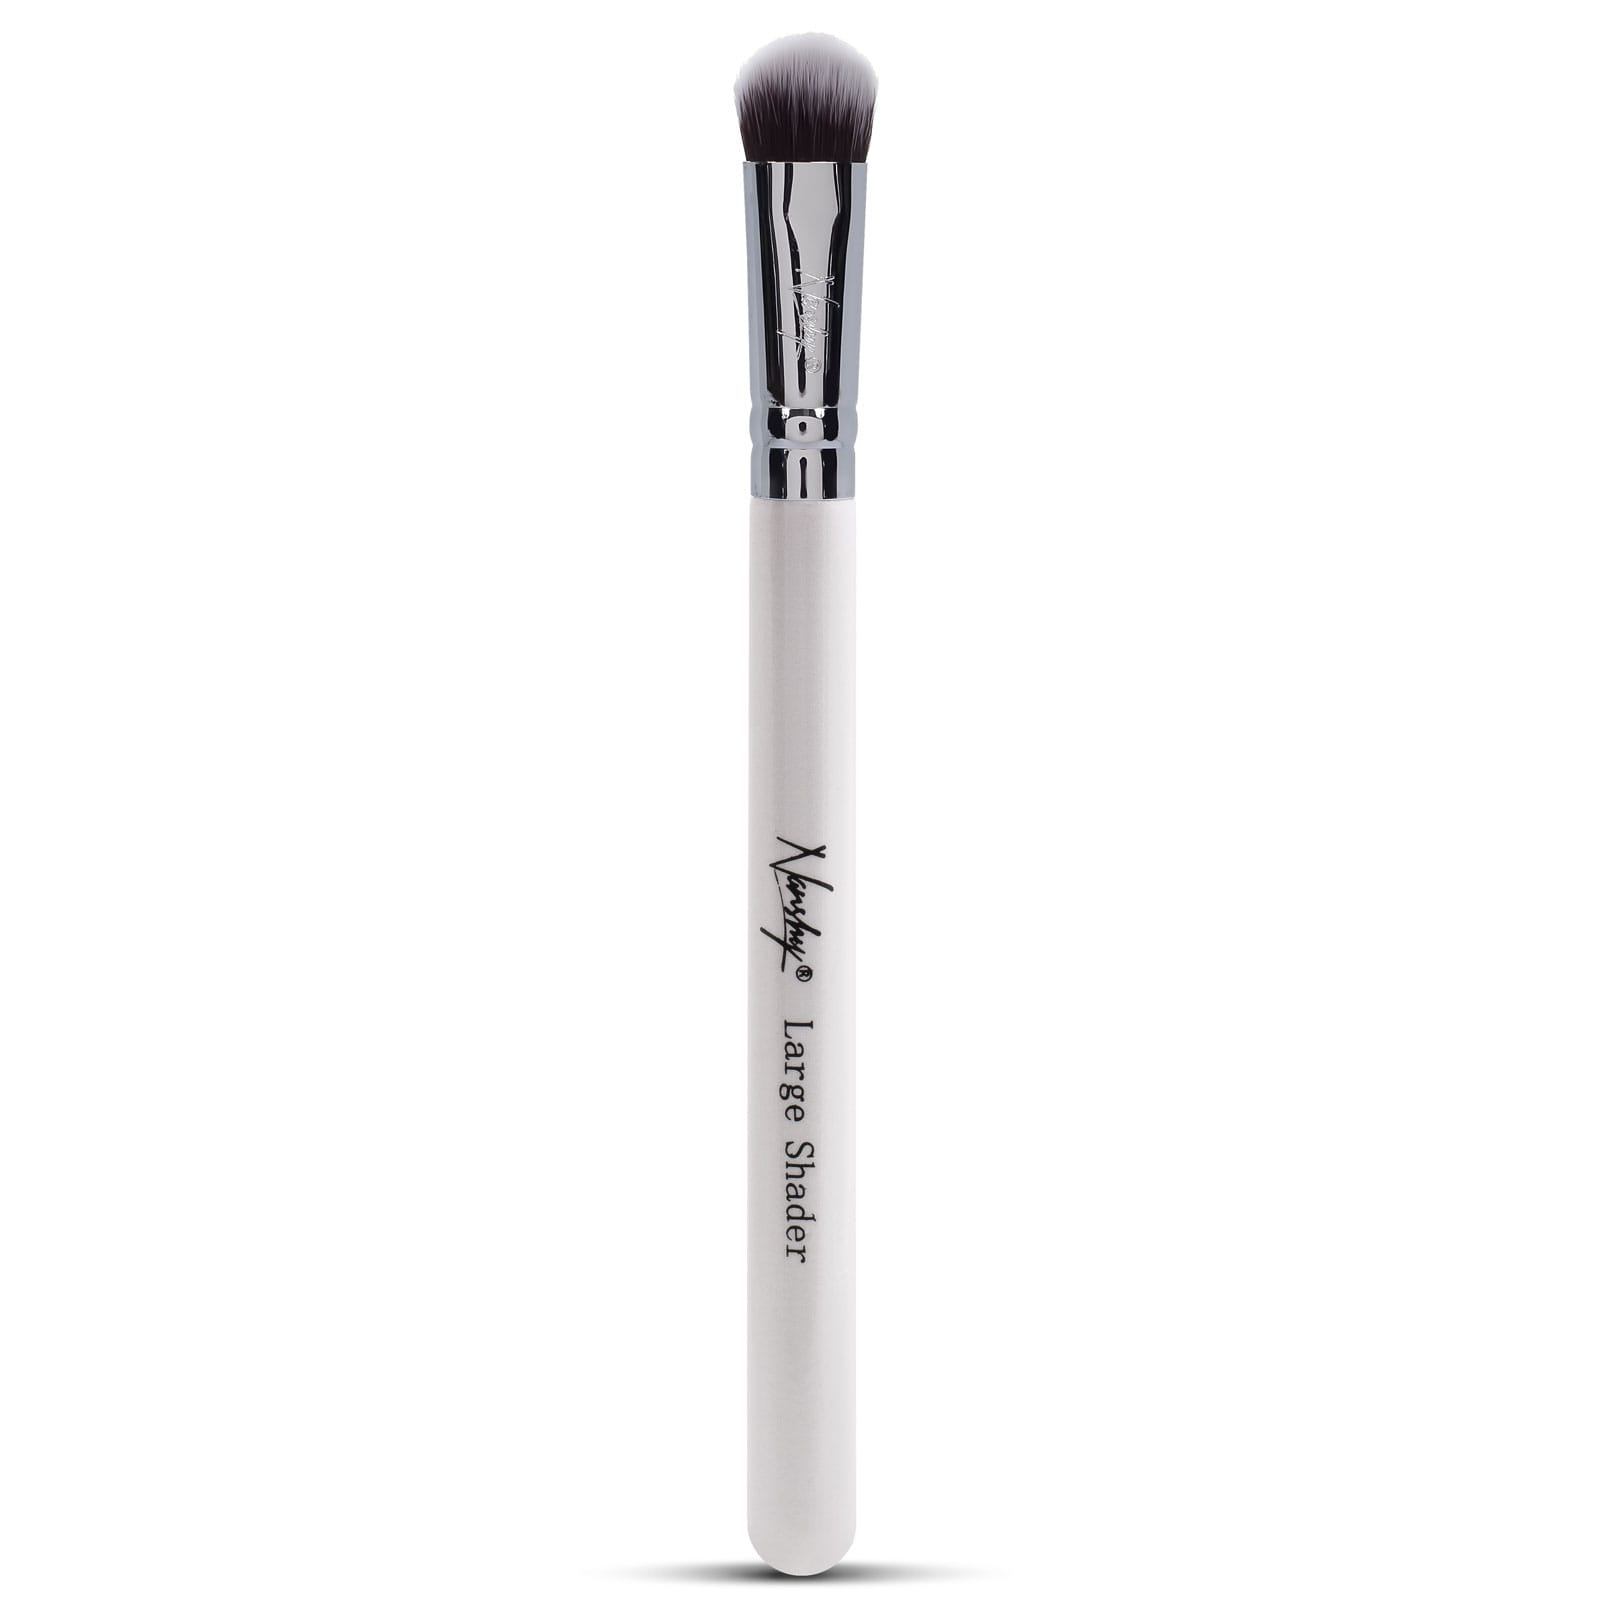 Large Shader EB07 Eye Makeup Brush